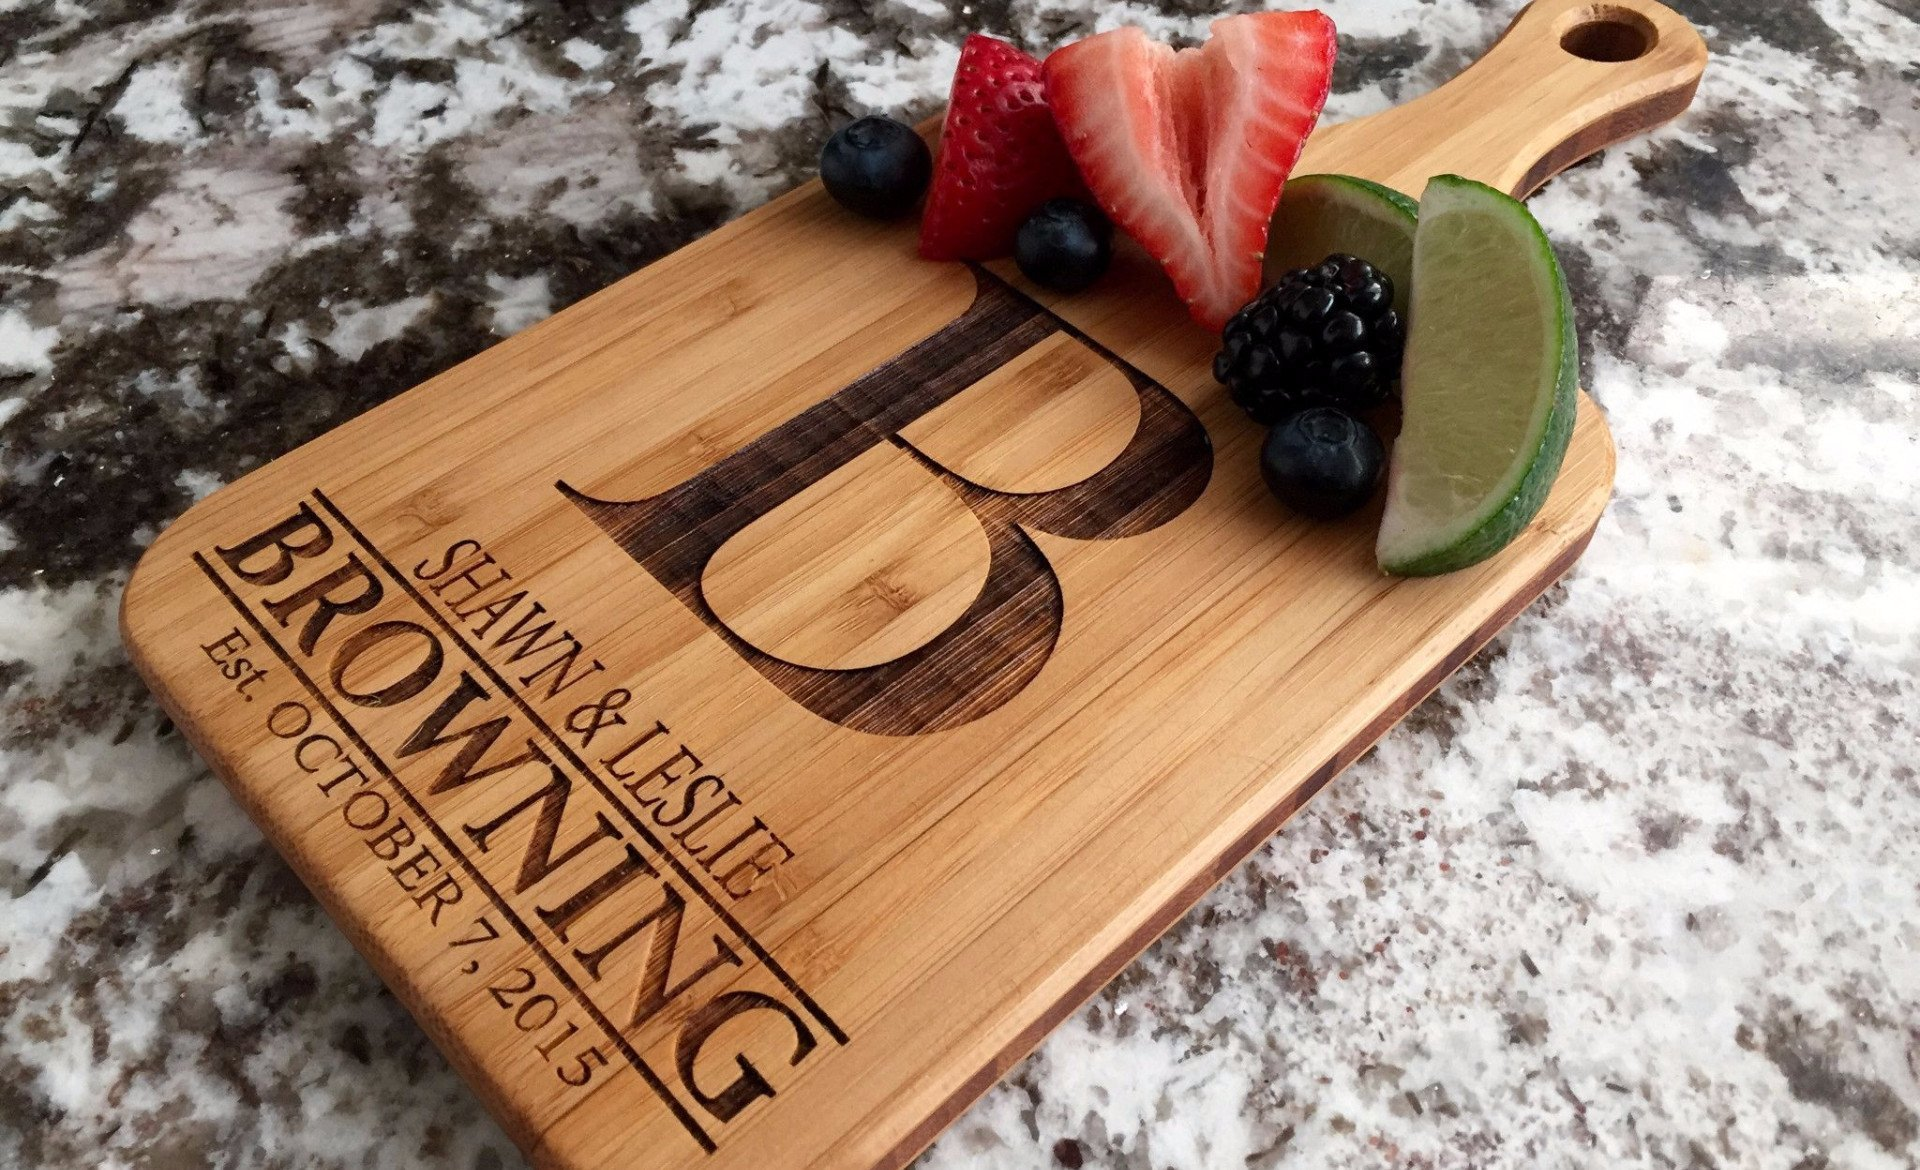 Personalized Wedding Gifts Cutting Board - Wood Cutting Boards, Also Bridal Shower and Housewarming Gifts (5 x 11 Bamboo Paddle Shaped, Browning Design)